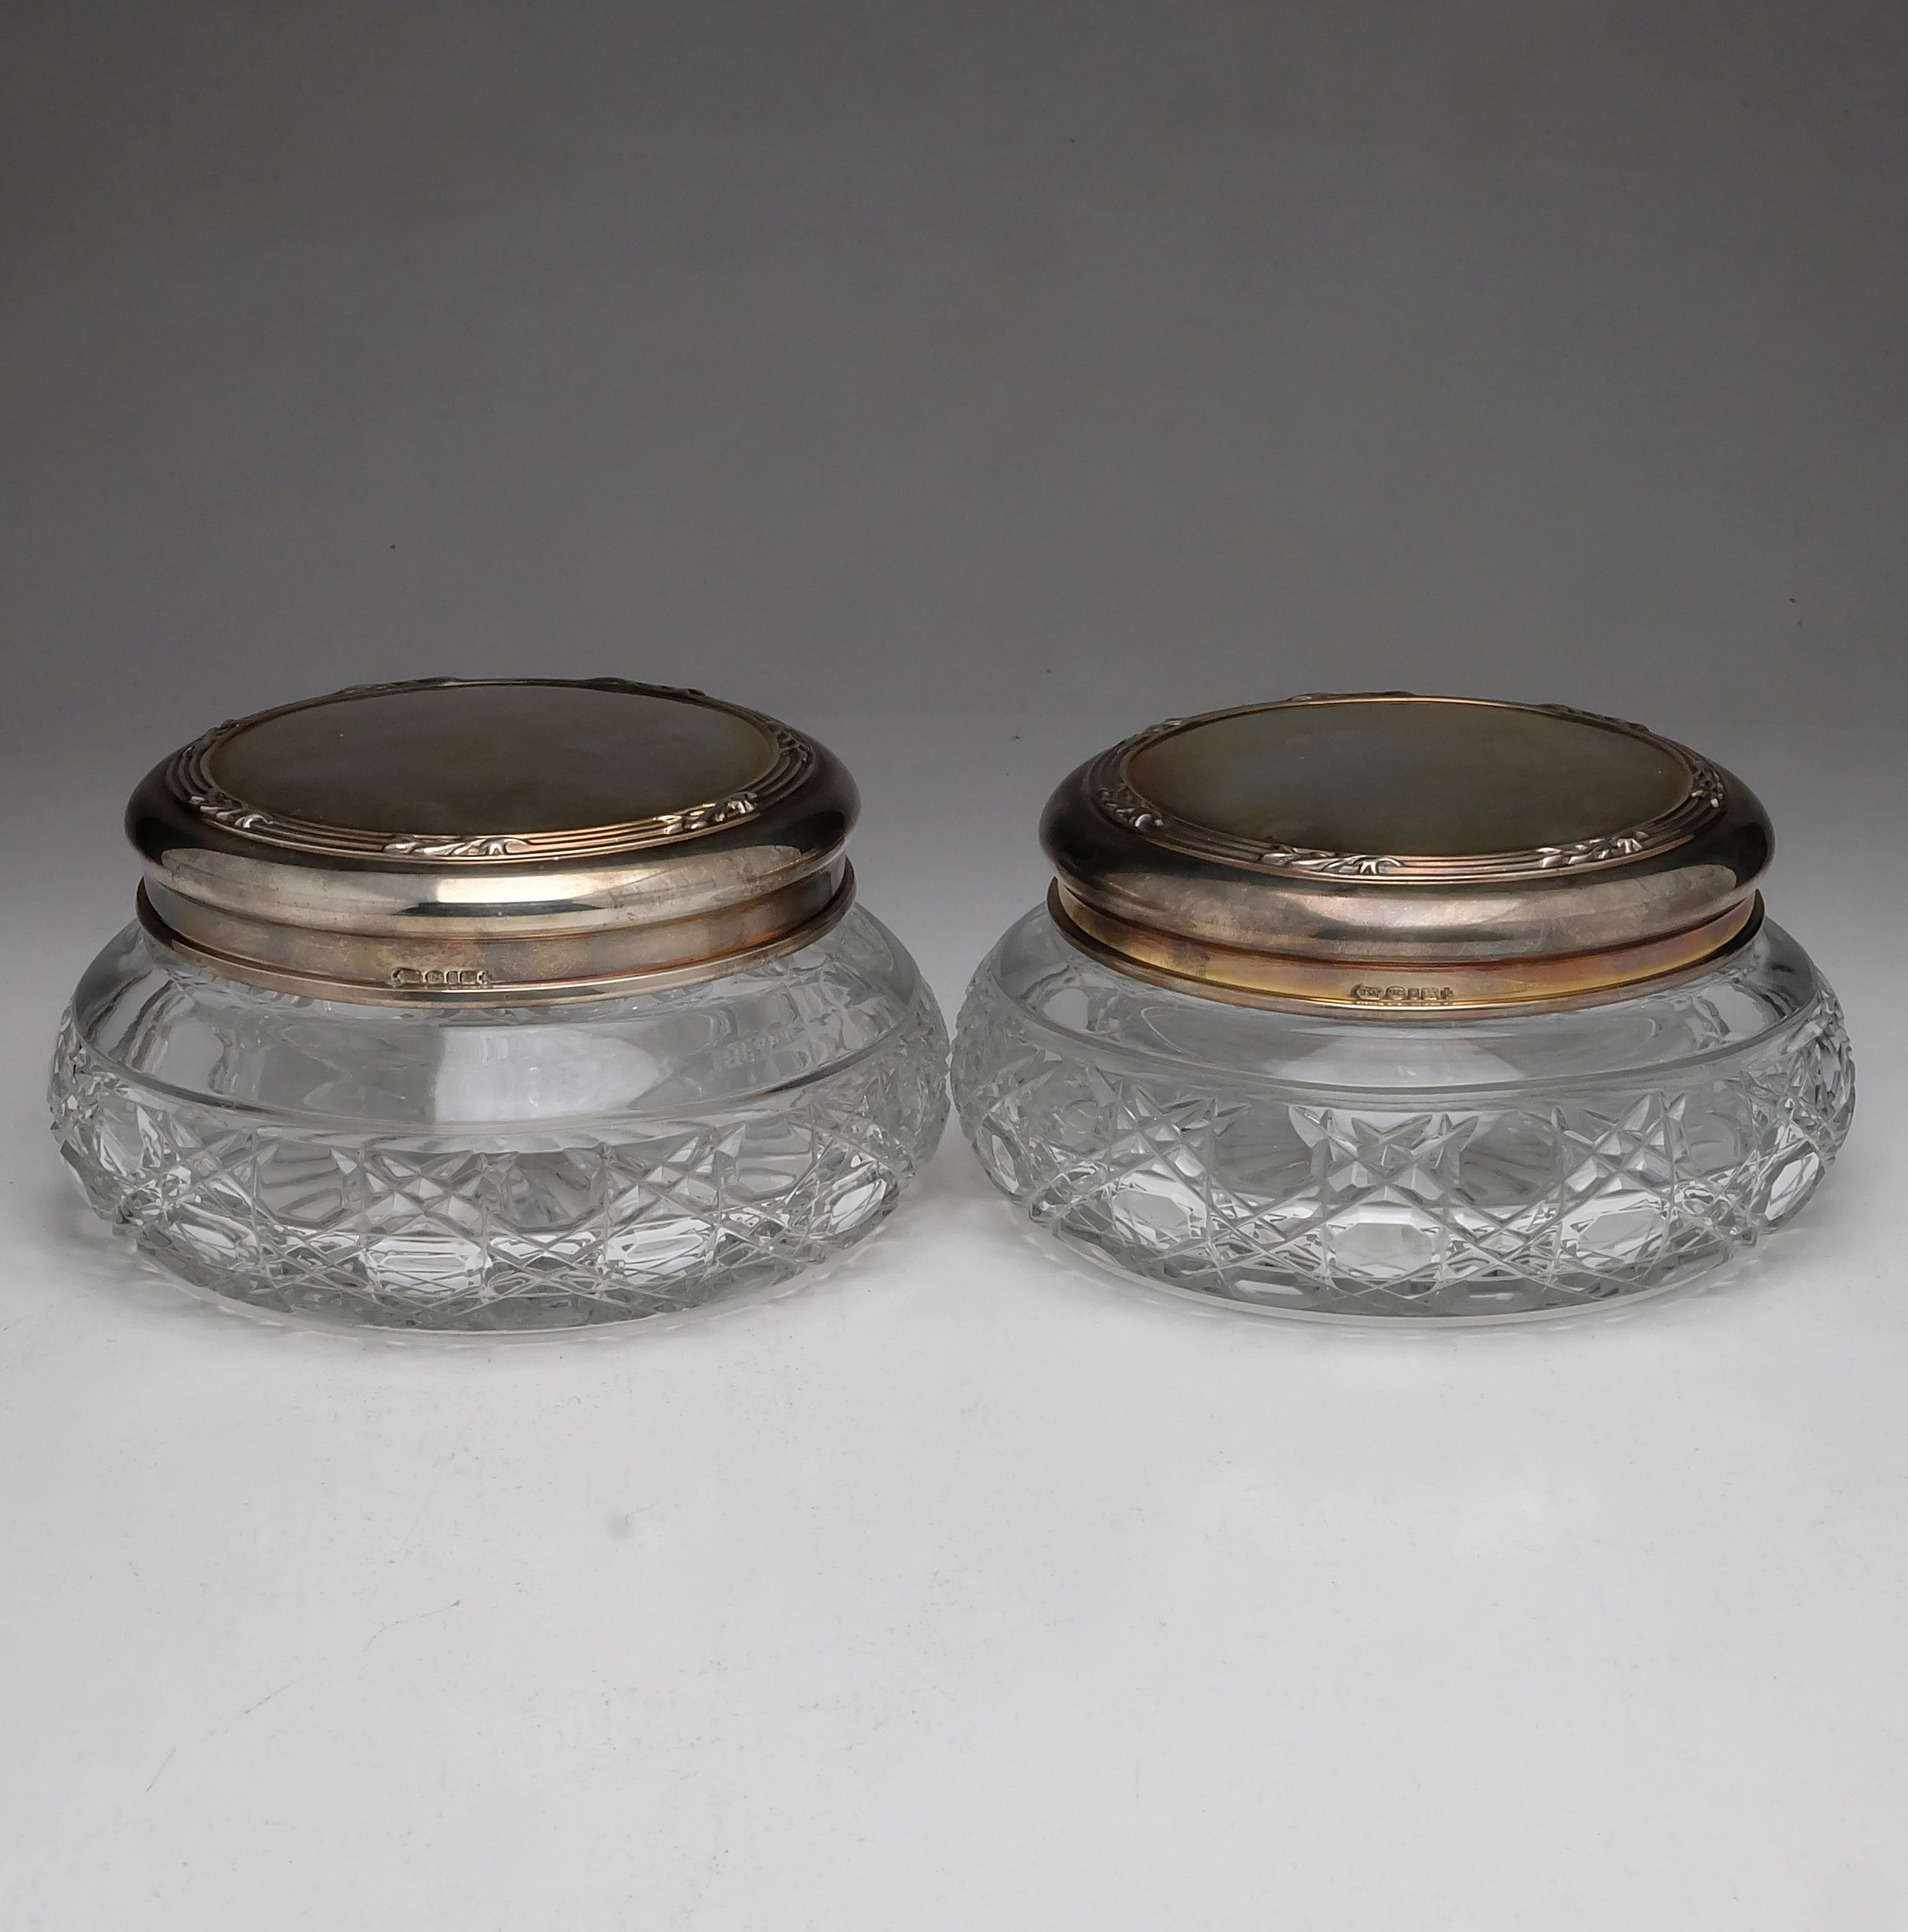 'Pair of Sterling Silver and Cut Glass Containers Sheffield Whitehill Silver & Plate Co 2000'